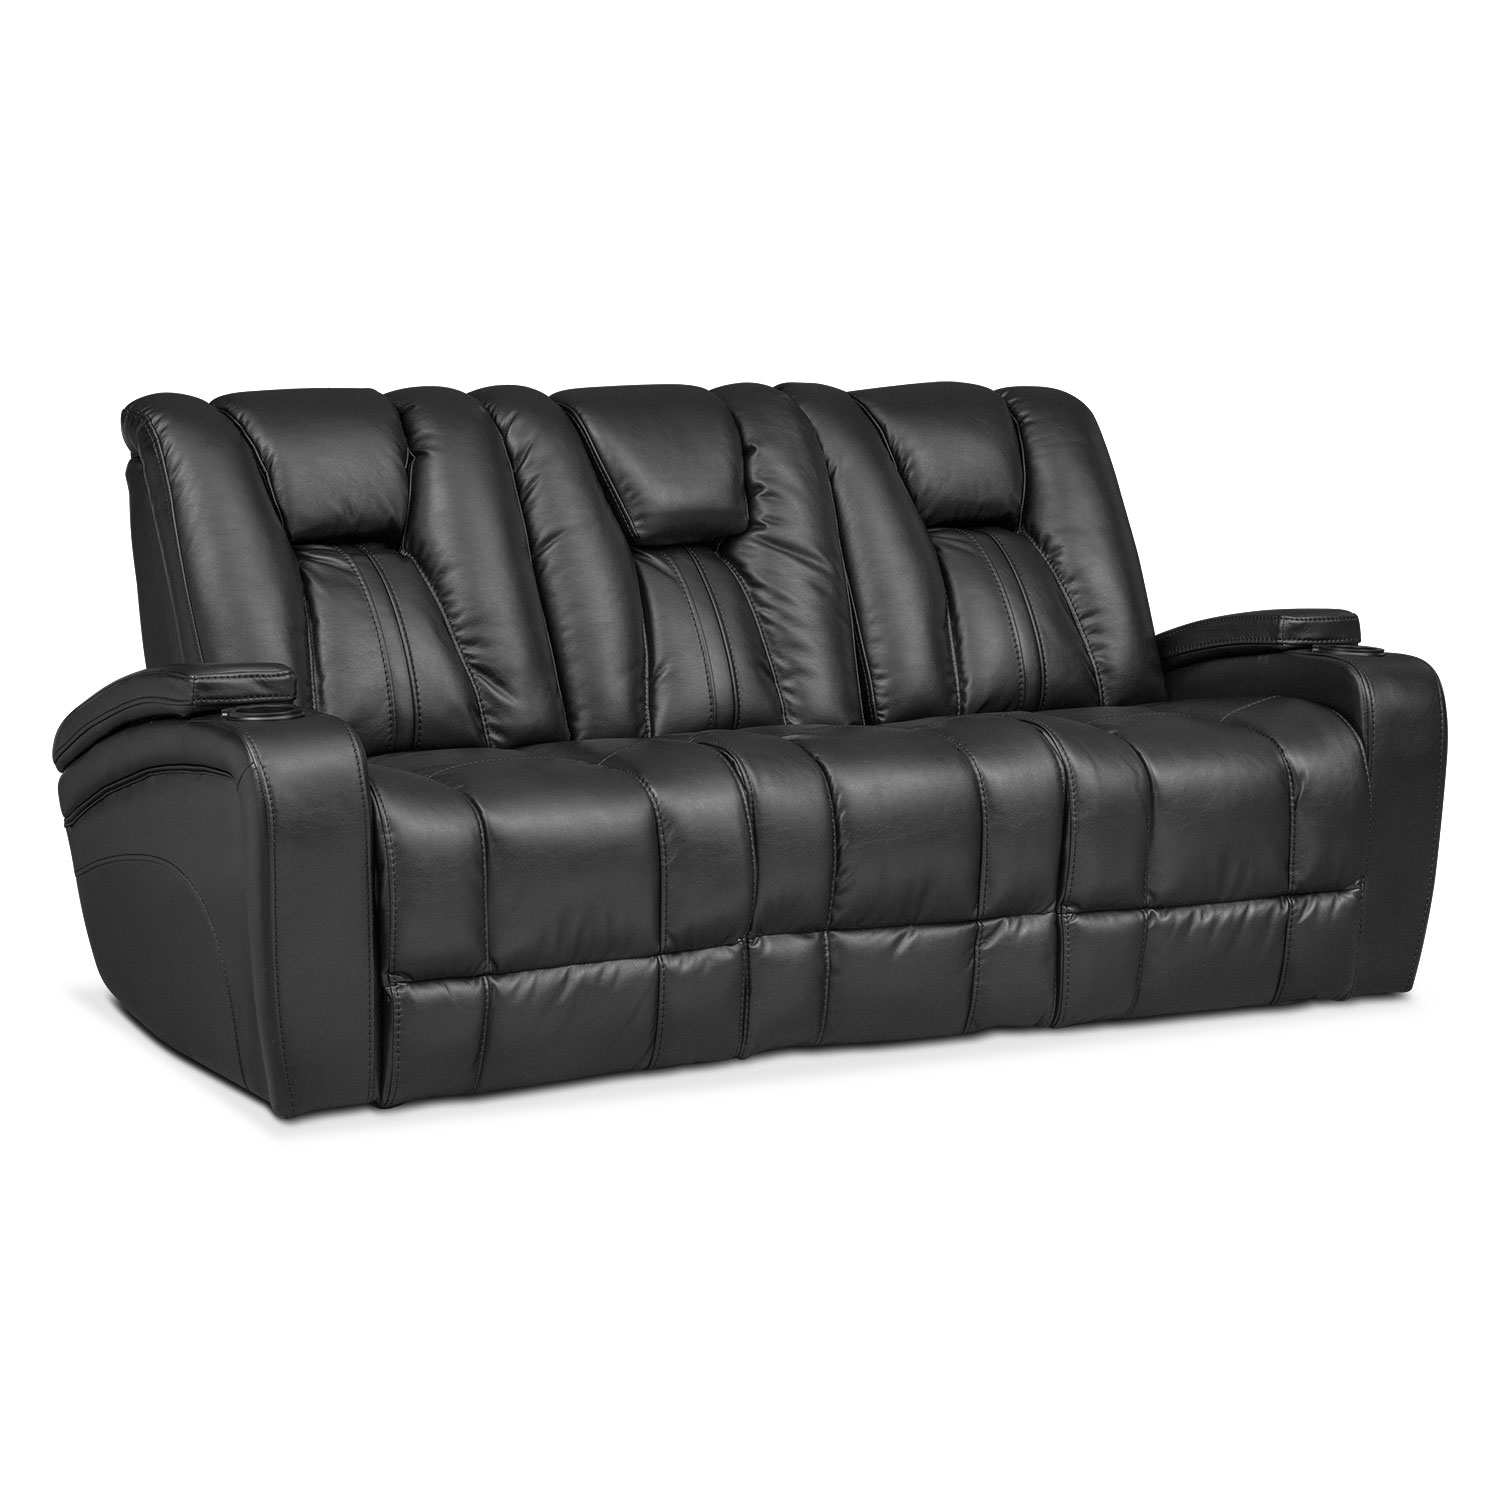 dual reclining drop threshold trim chapmandual with width mcha kon parker down sofa recliner living item casual height chapman console products